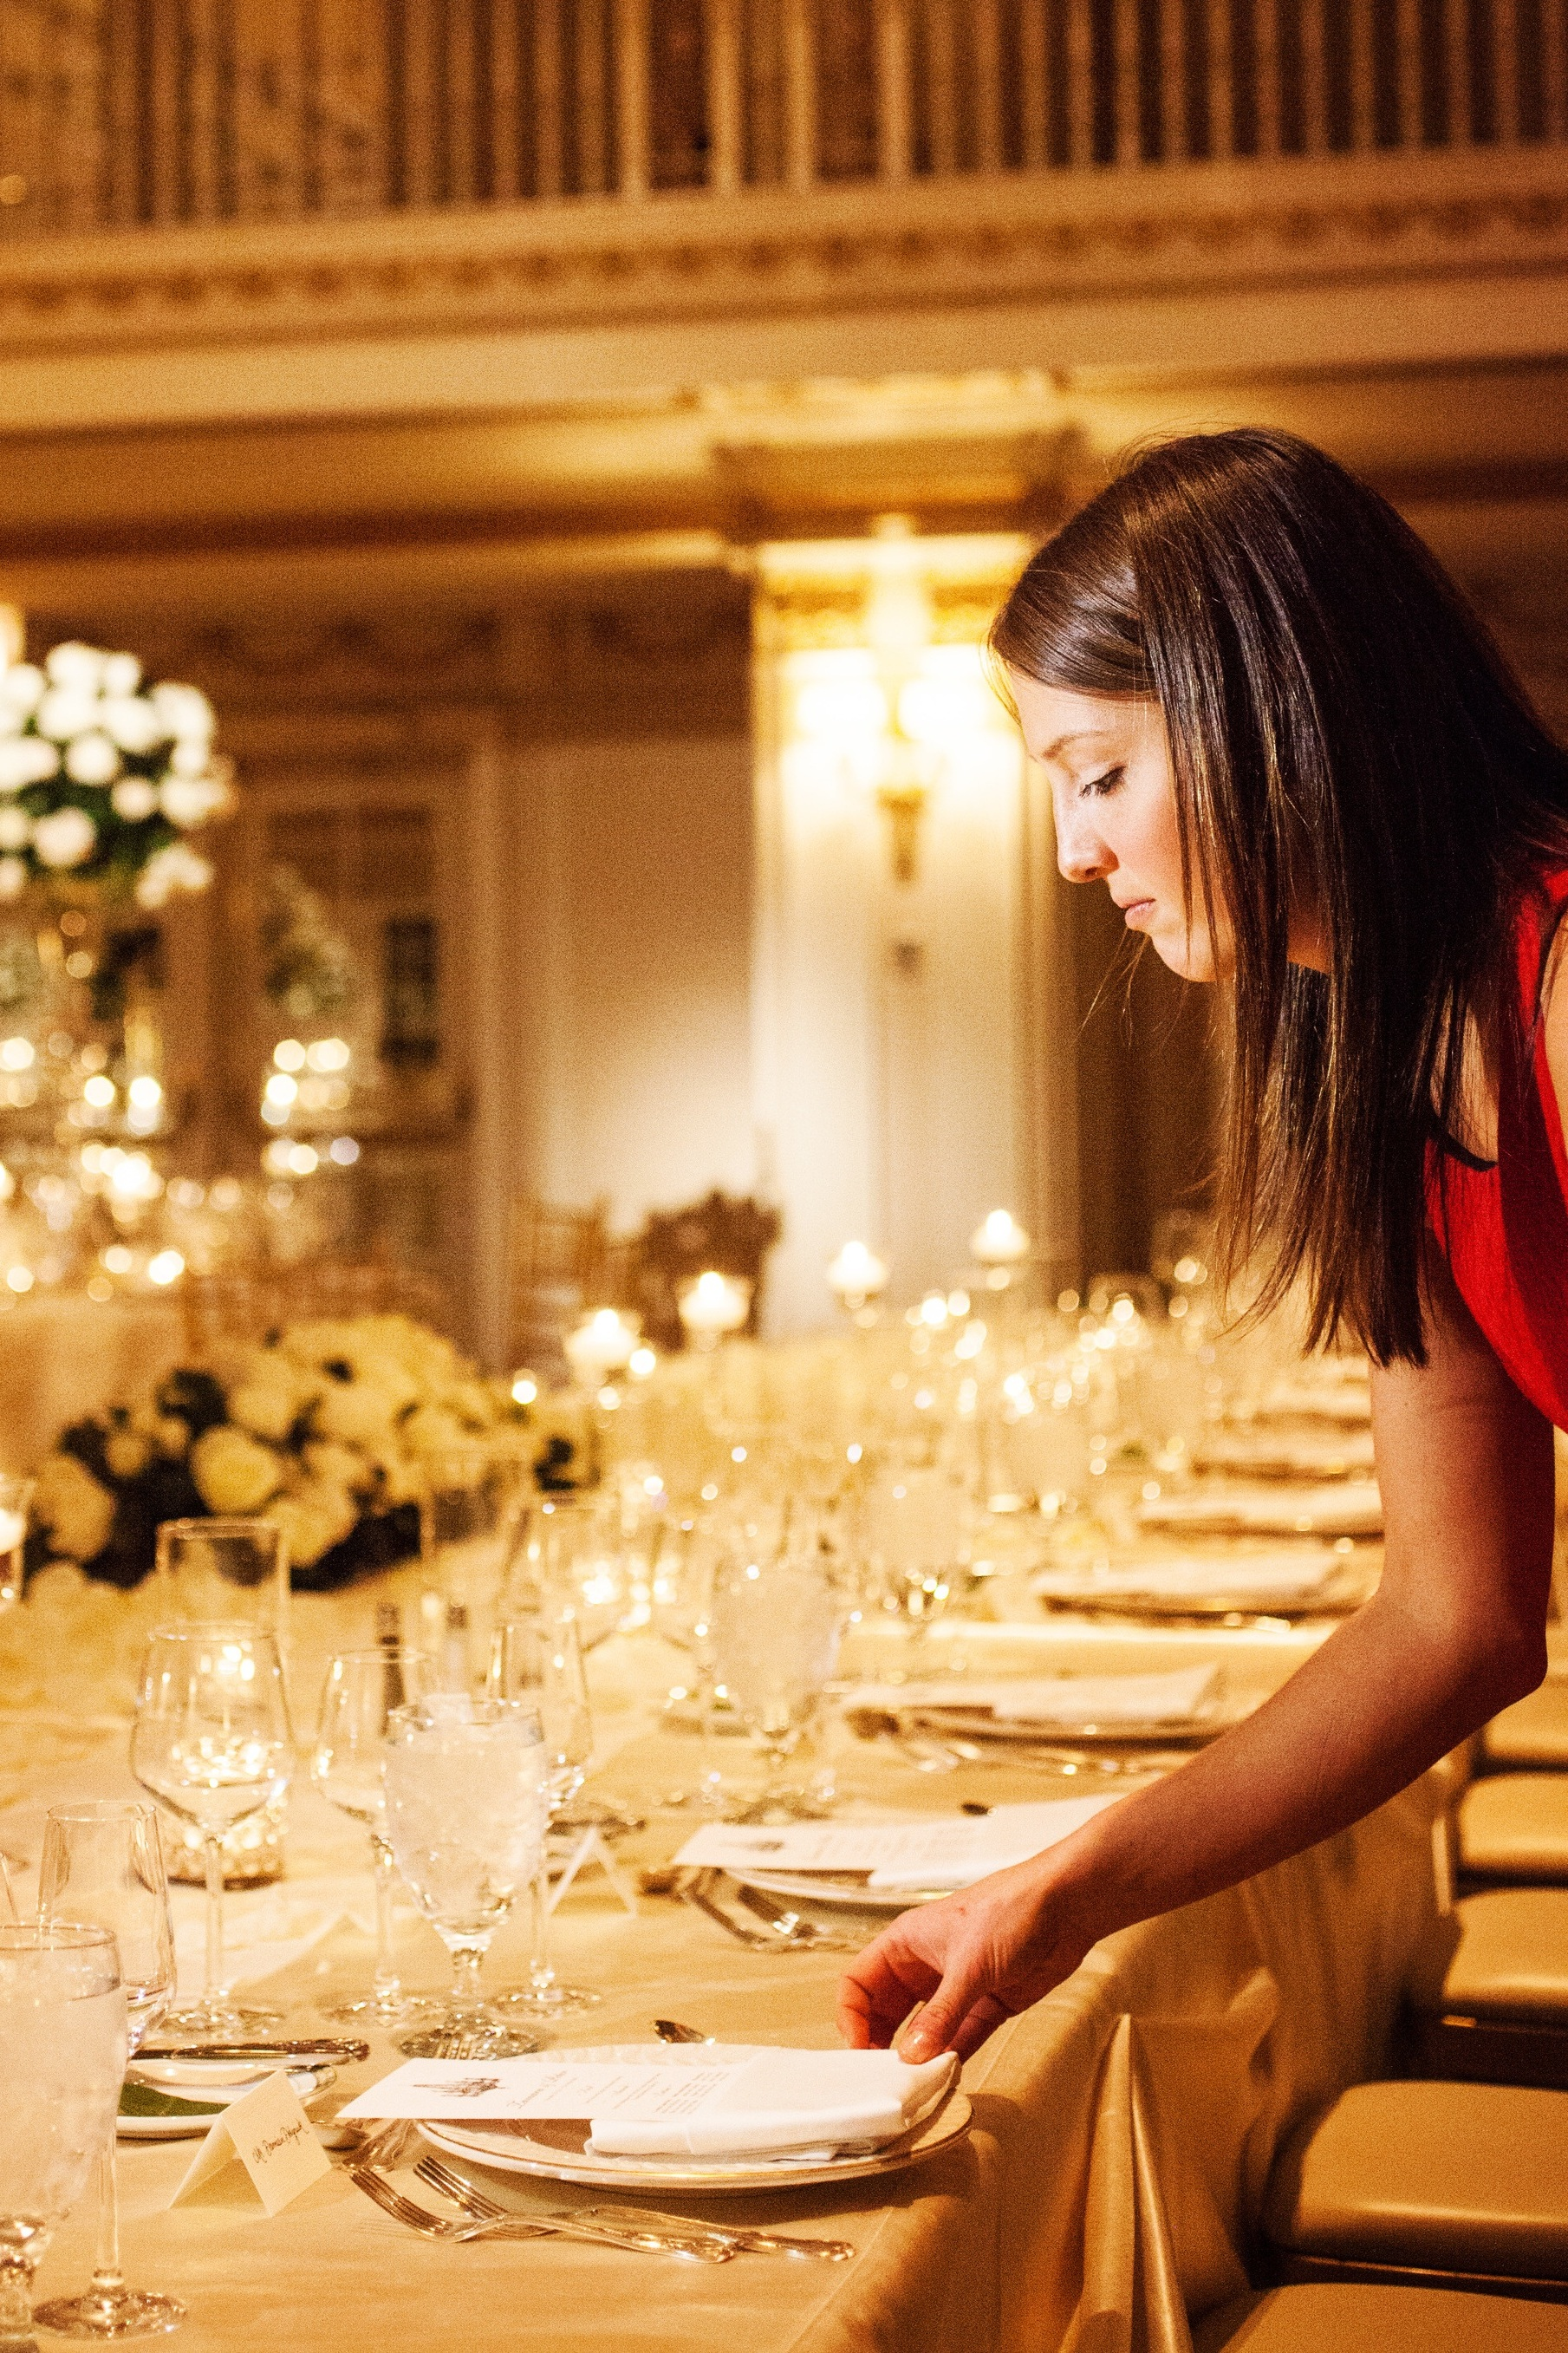 Kelly's career began in Chicago where she found her passion for planning events. She sharpened her event planning skills by planning a variety of types of events including, non profit fundraisers, corporate galas, promotional events and weddings. Kelly's eye for detail and creative mind will guide you through every phase of planning your event. She specializes in her boutique approach creating personalized events that are a true reflection of her client's style and personality. Whether you envision an intimate dinner in your backyard, a regal black-tie affair in the city or a tented outdoor wedding, Kelly will help transform your dreams and make them a reality.